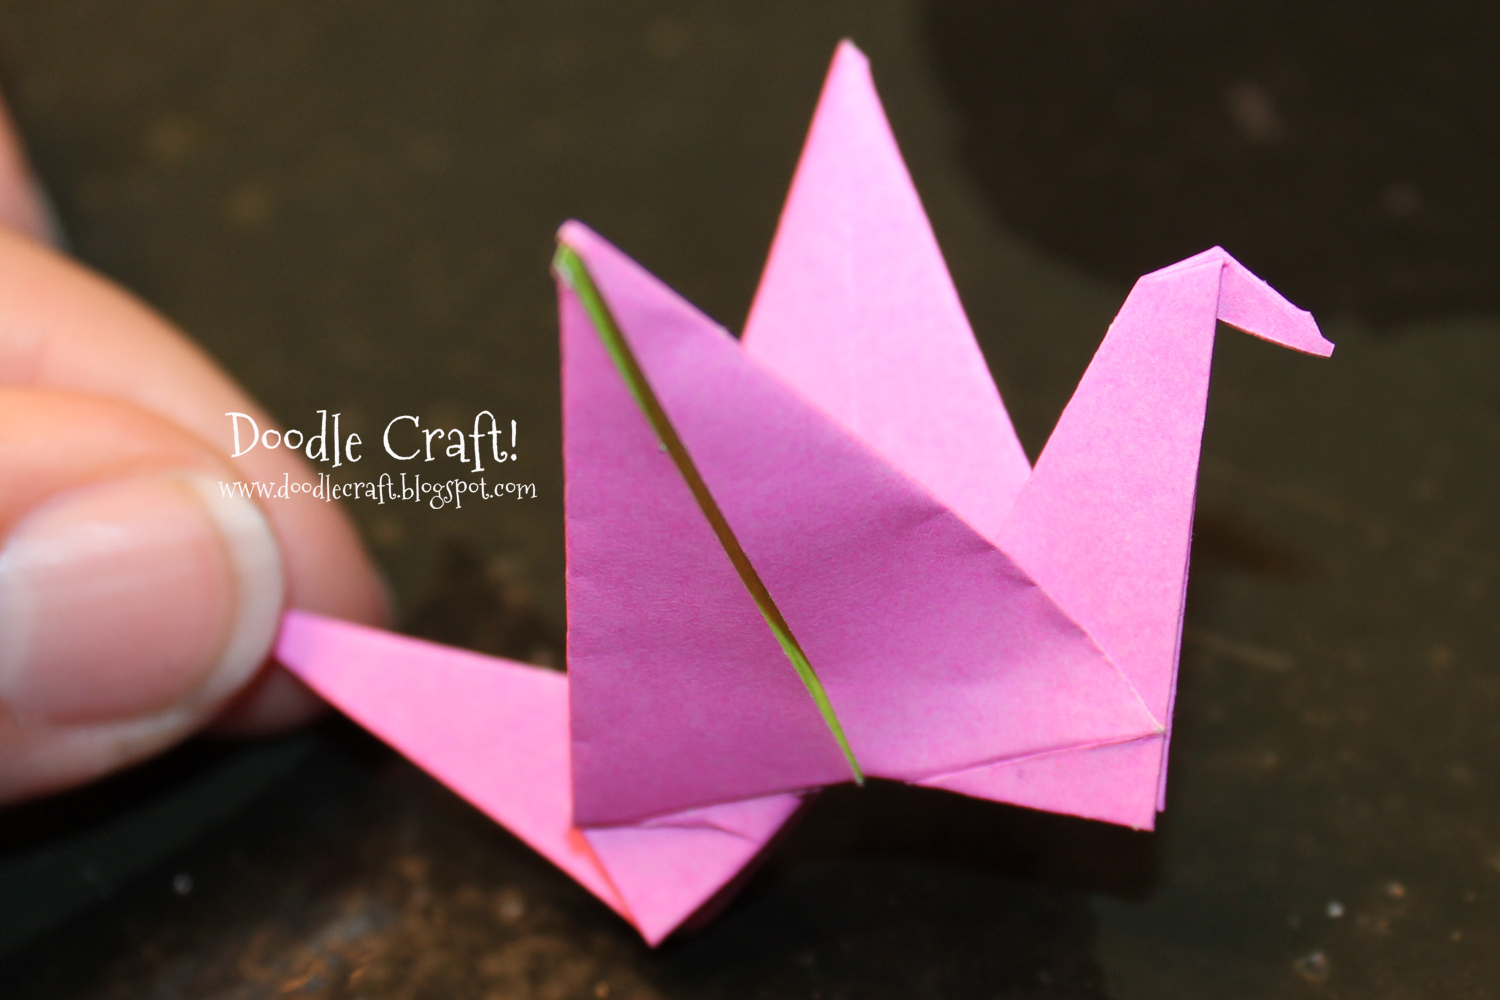 Origami Crane folding instructions (With images) | Origami crane ... | 1000x1500